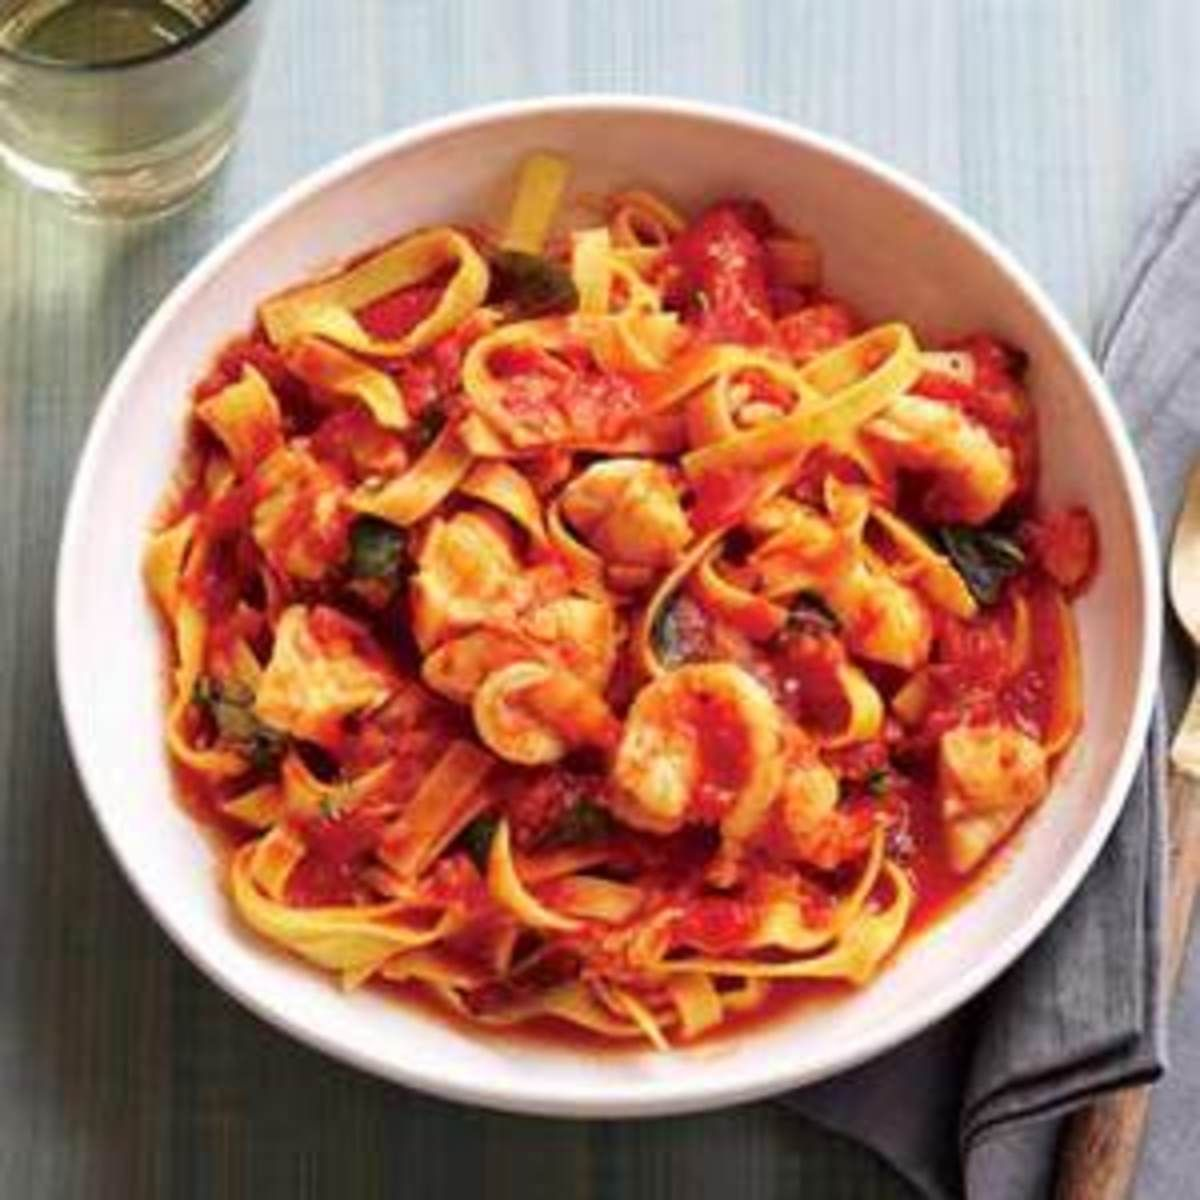 Saffron Infused Fra Diavolo Sauce And Tagliatelle Recipe Tagliatelle Recipe Recipes Tagliatelle